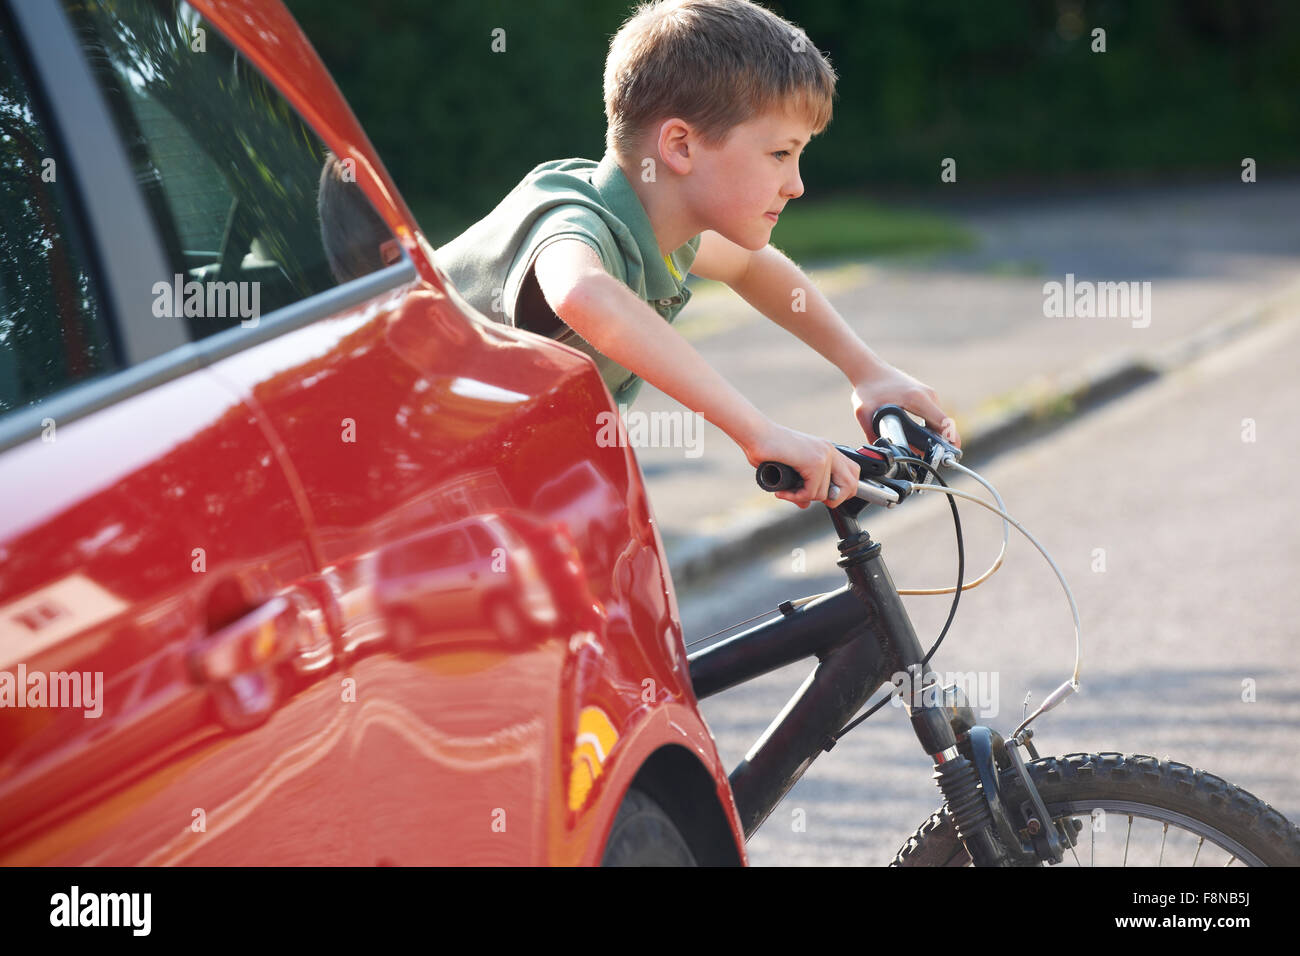 Child Riding Bike From Behind Parked Car Stock Photo